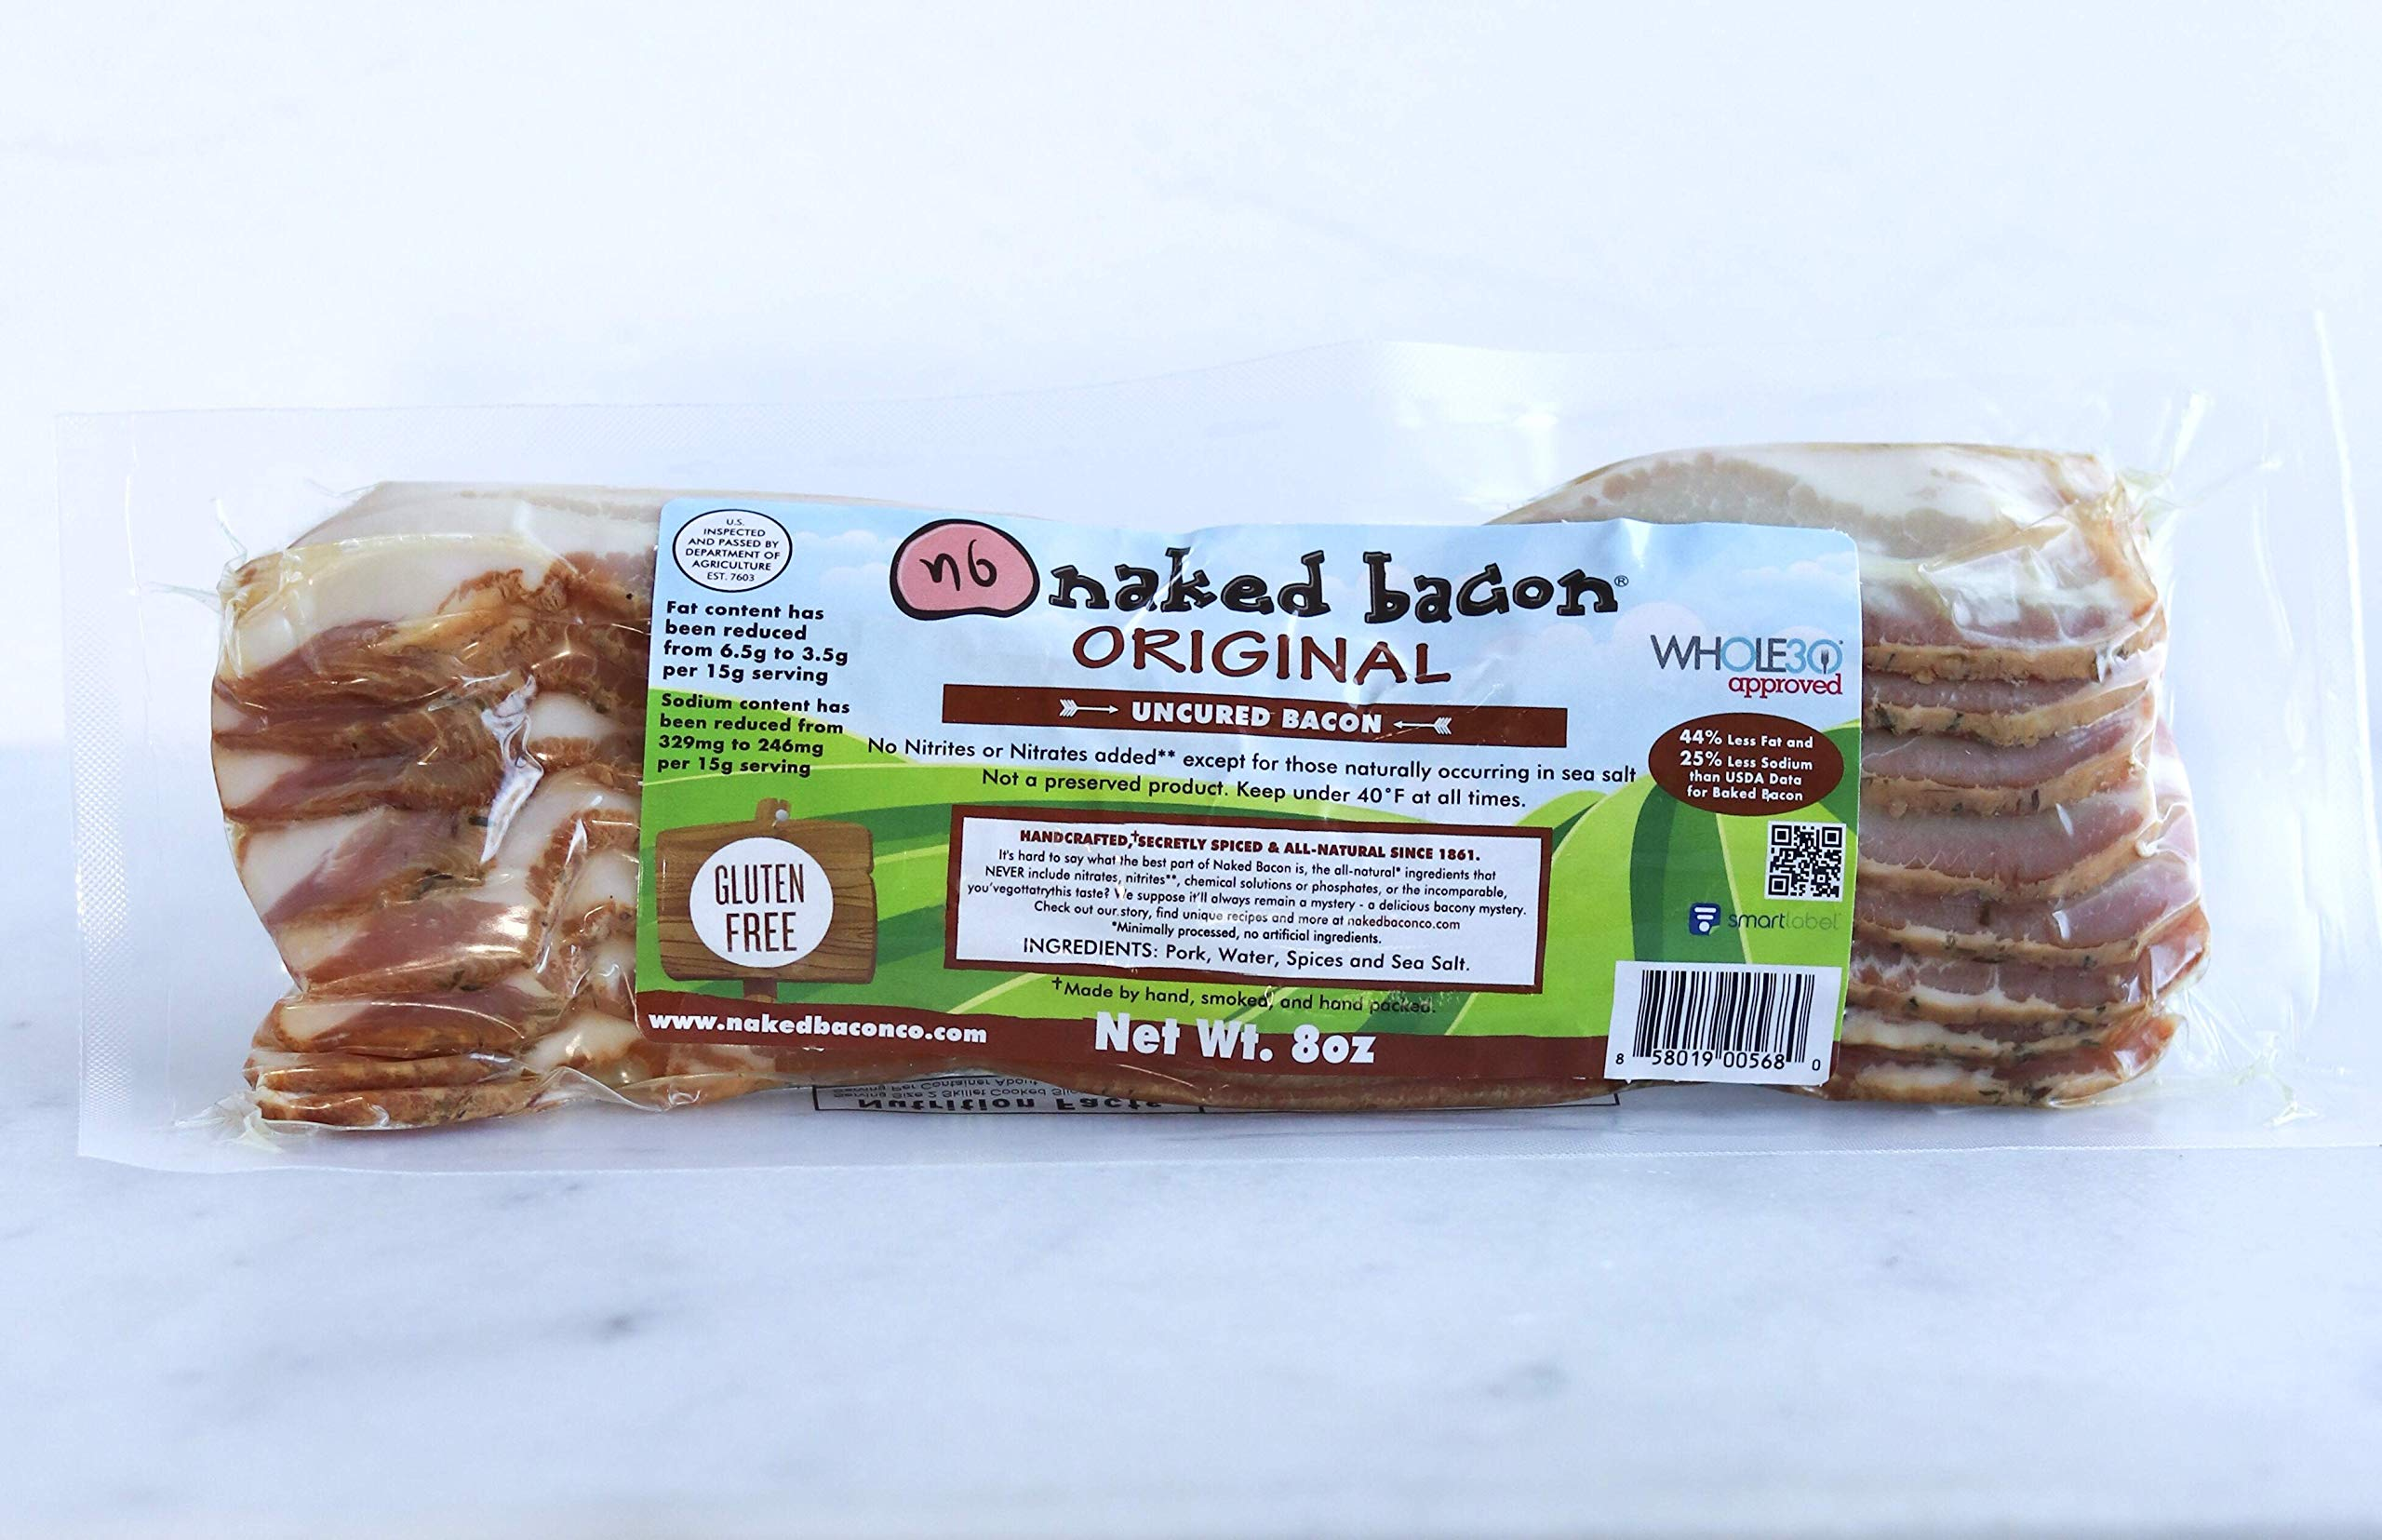 Original Sugar Free Naked Bacon - Whole30 Approved Multipack (5 packages)